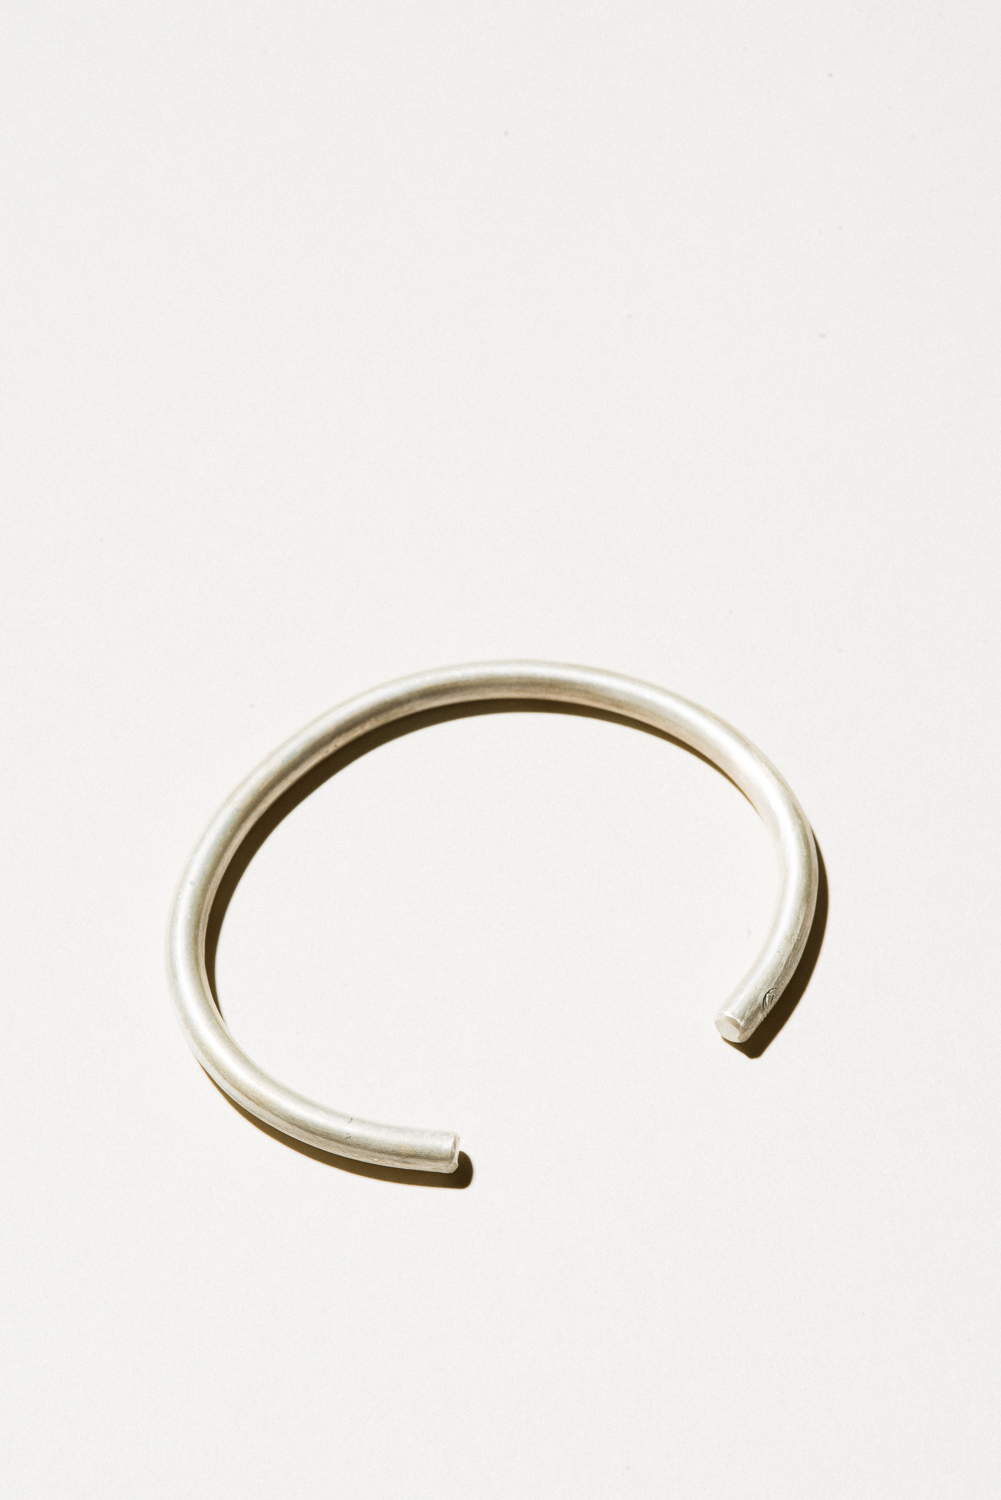 Silver Wire Cuff - 5mm wideSterling Silver, Raw FinishHand Smithed$100